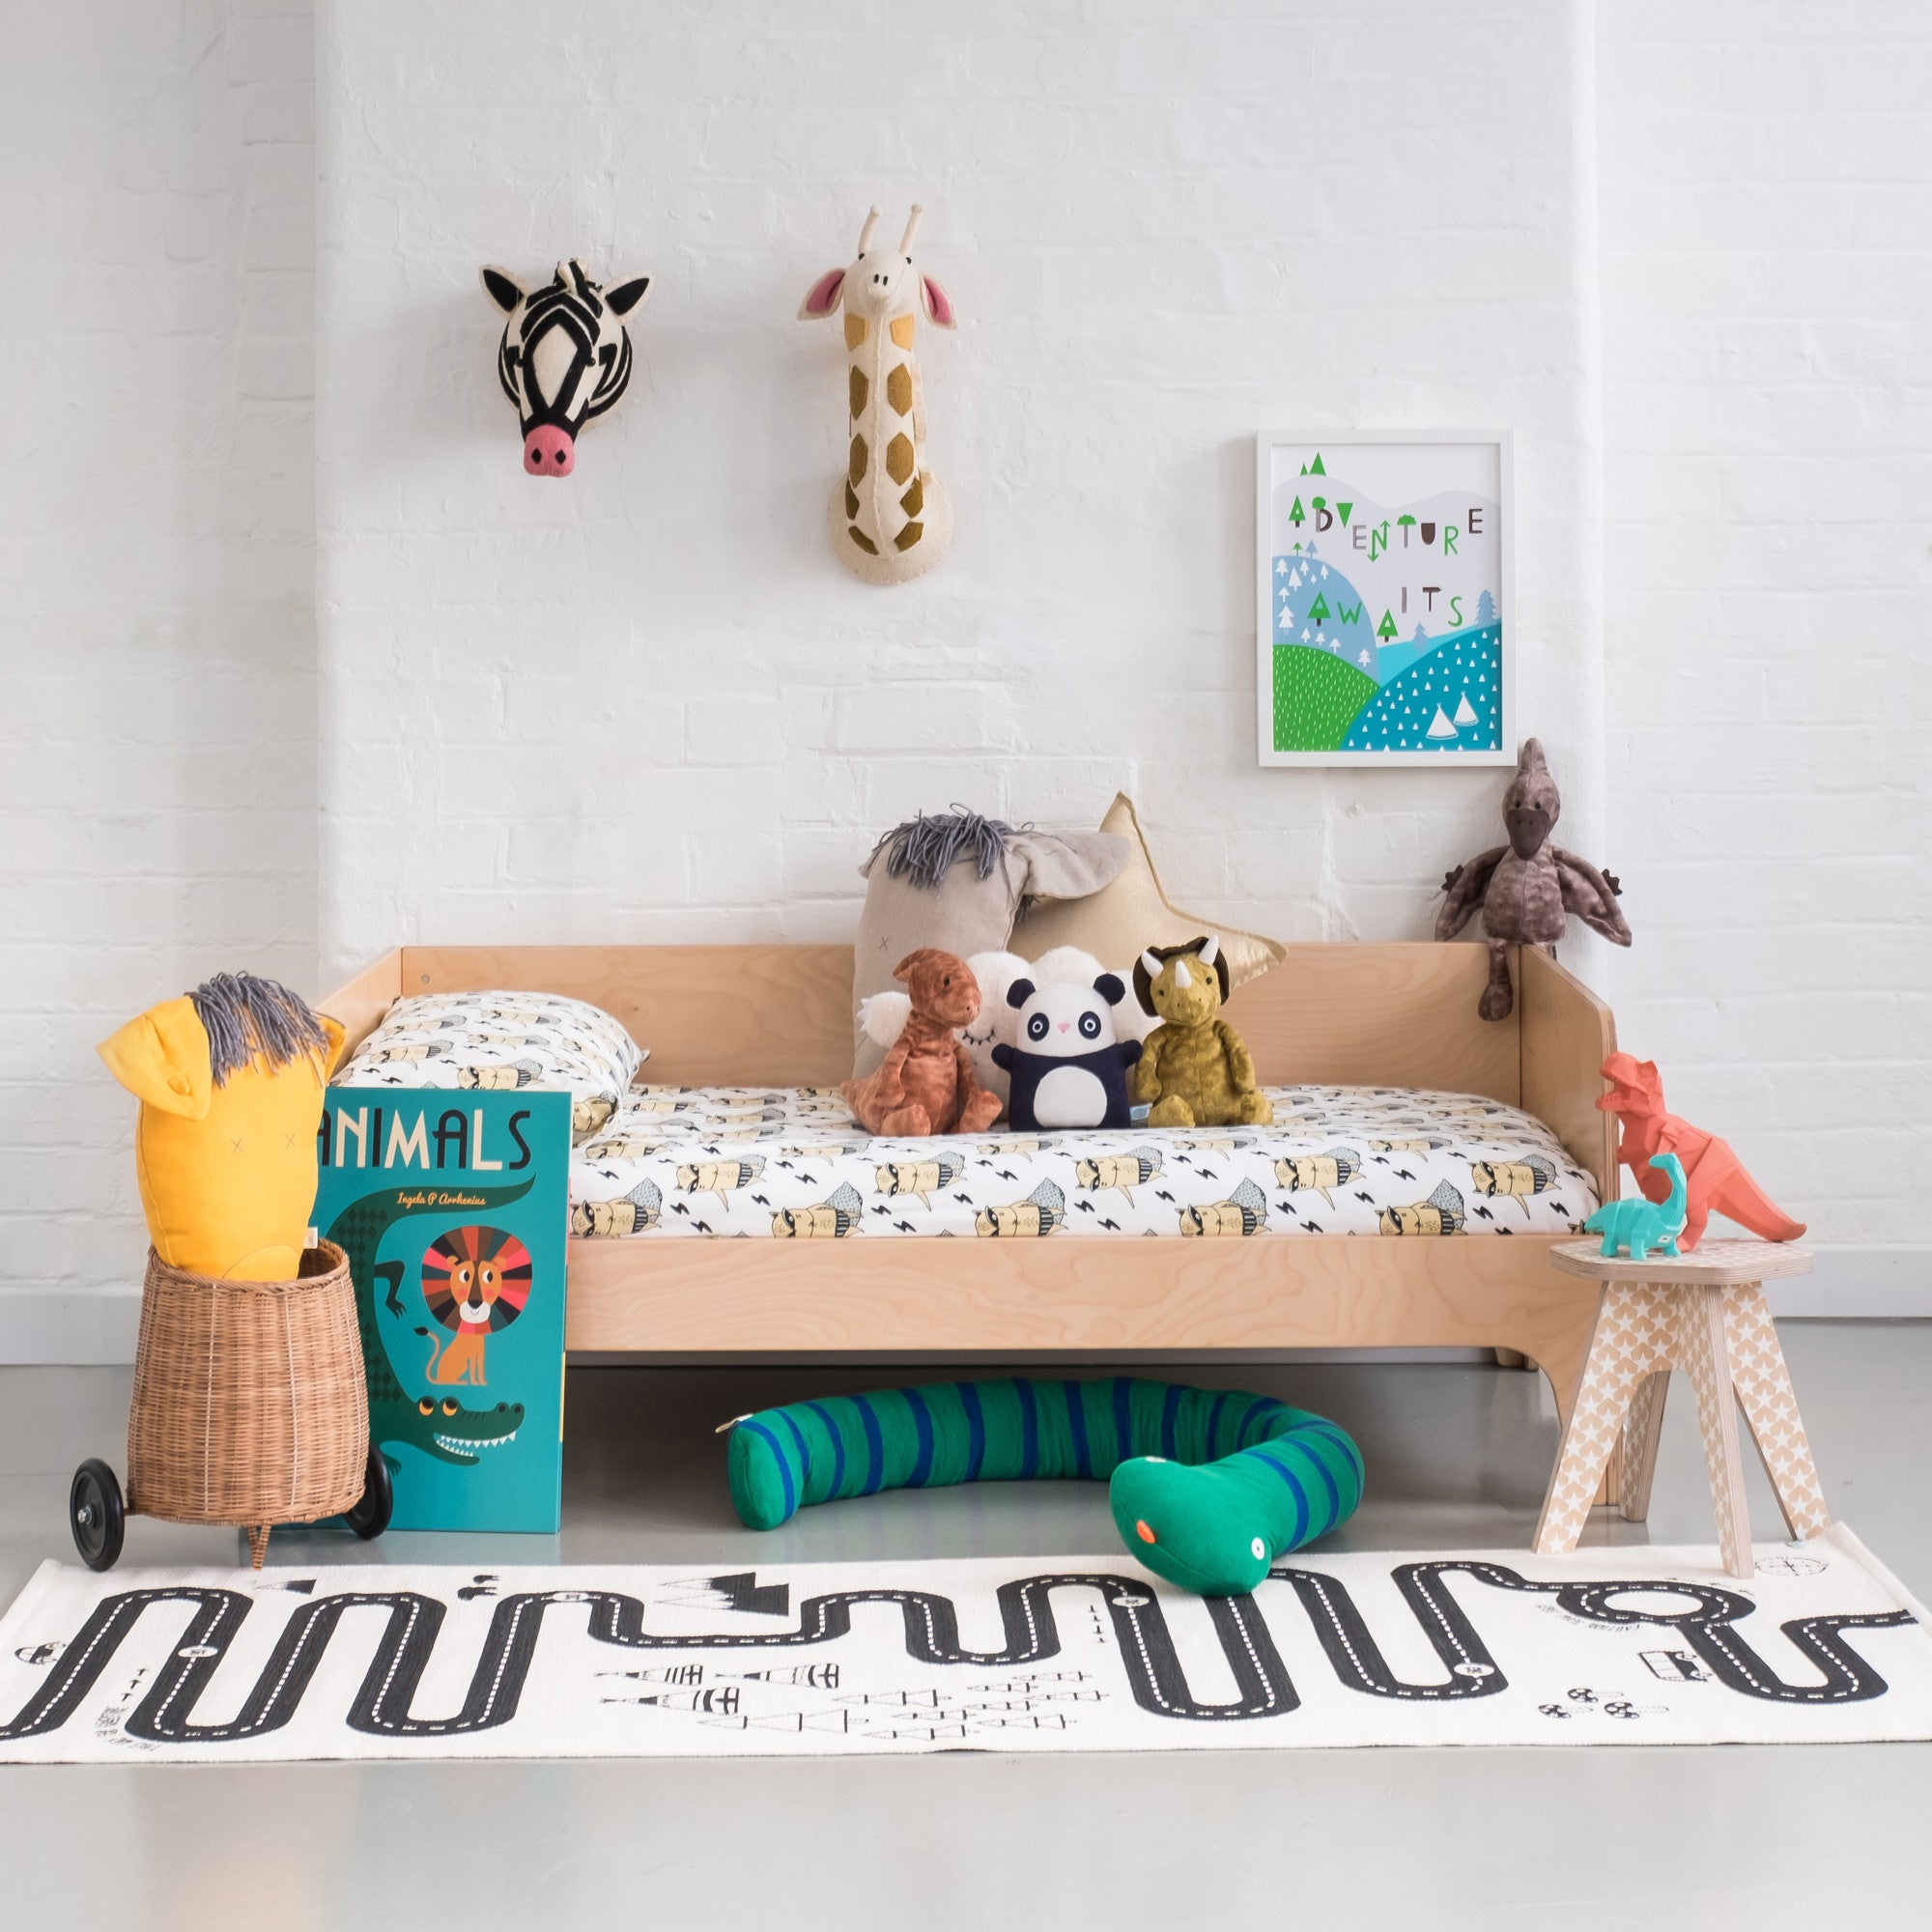 An Animal Adventure, children's bedroom styled by Bobby Rabbit.